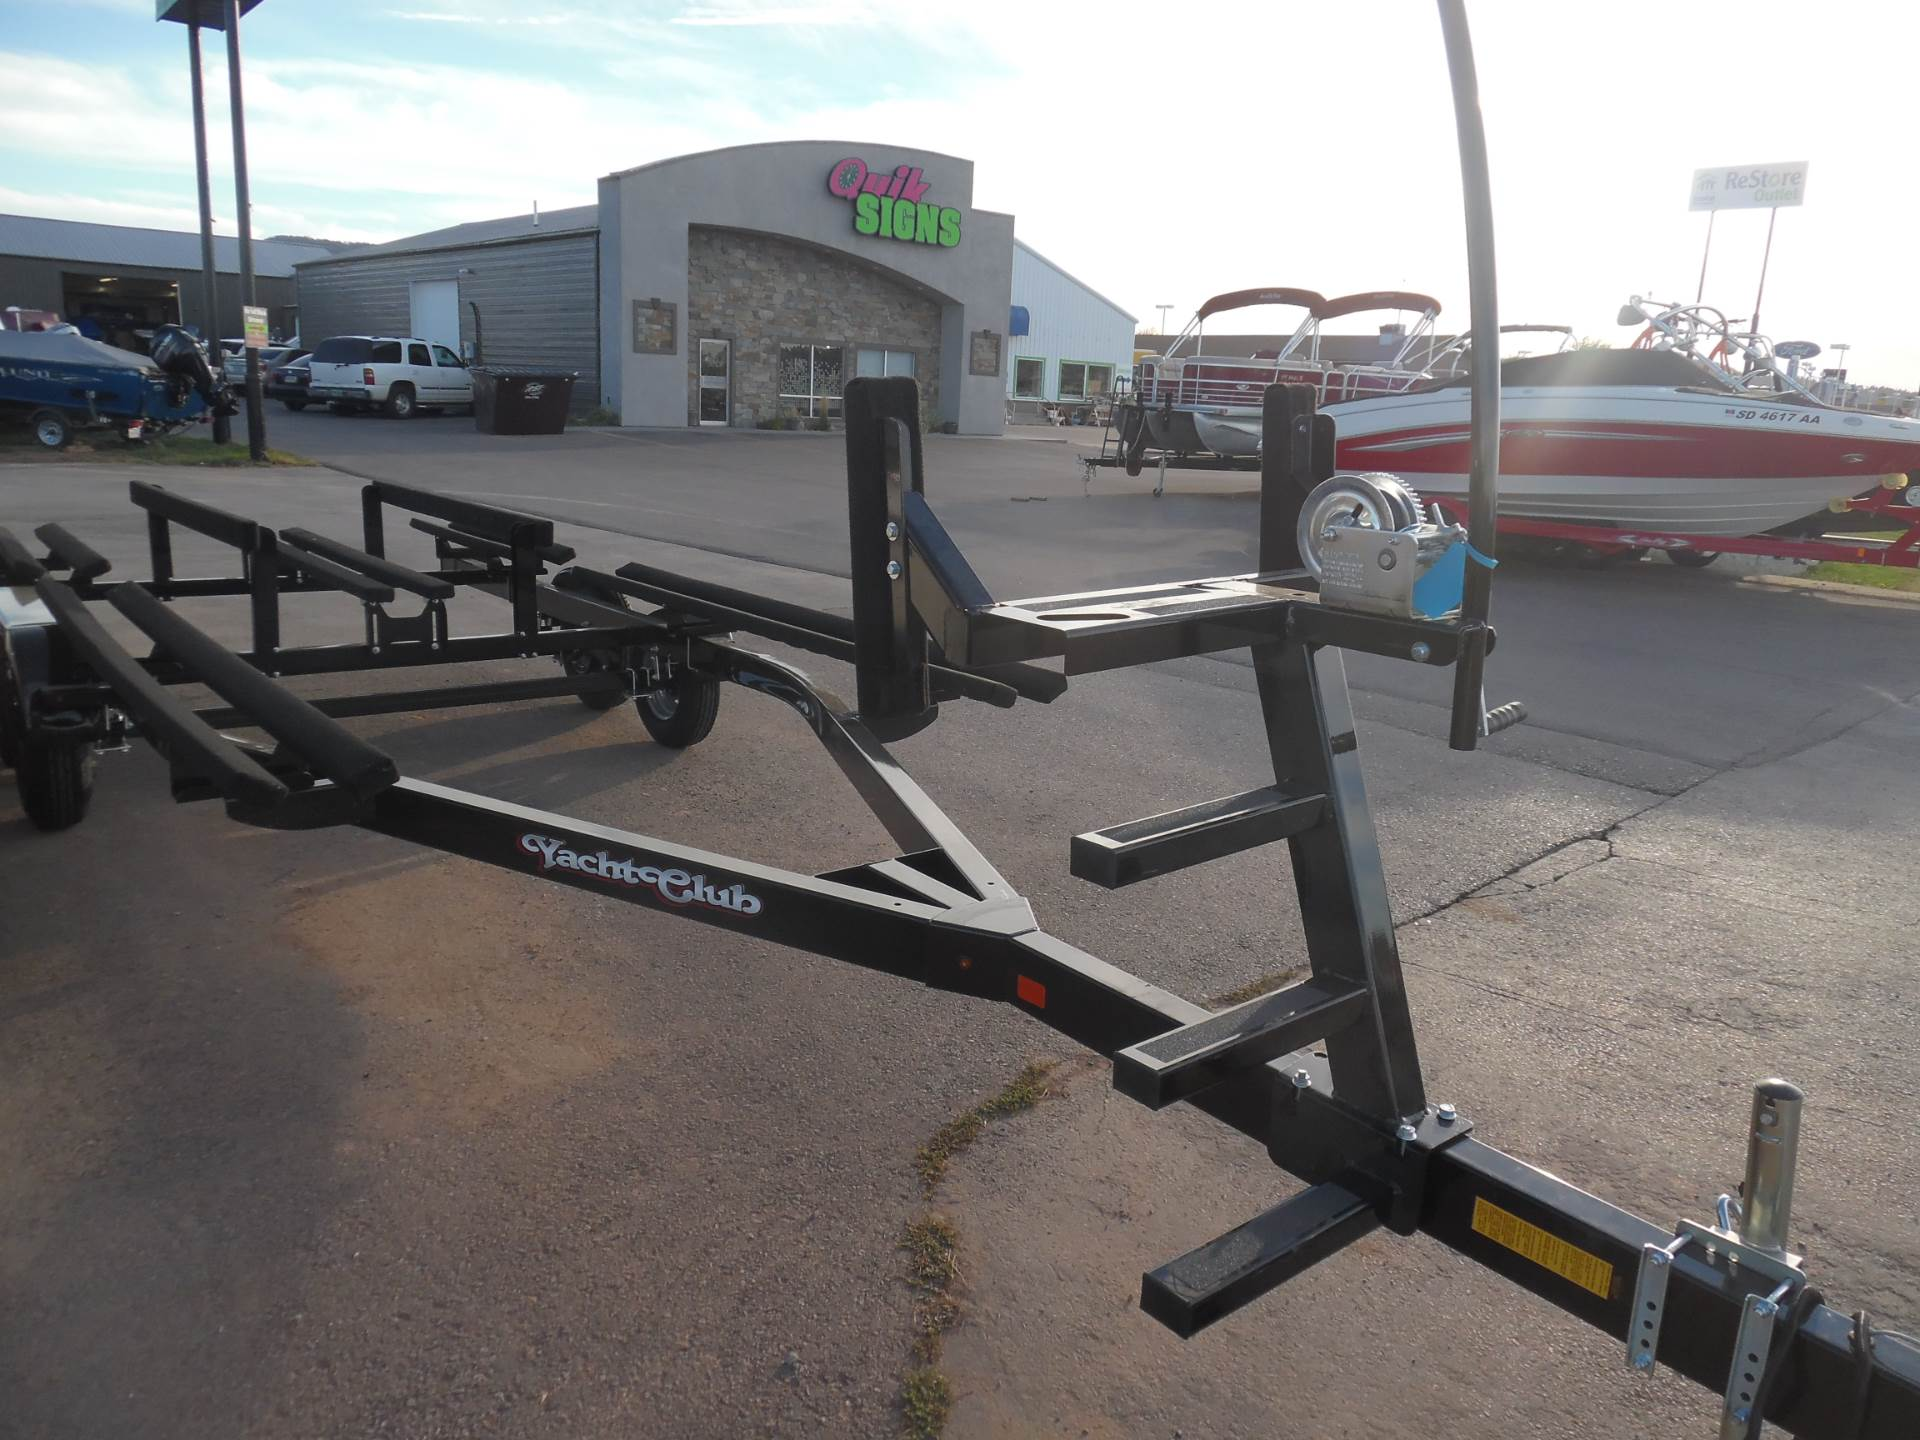 1900 Yacht Club Tandem Axle Pontoon Trailers for 18'-28' pontoons and tri-toons- in stock! in Spearfish, South Dakota - Photo 1